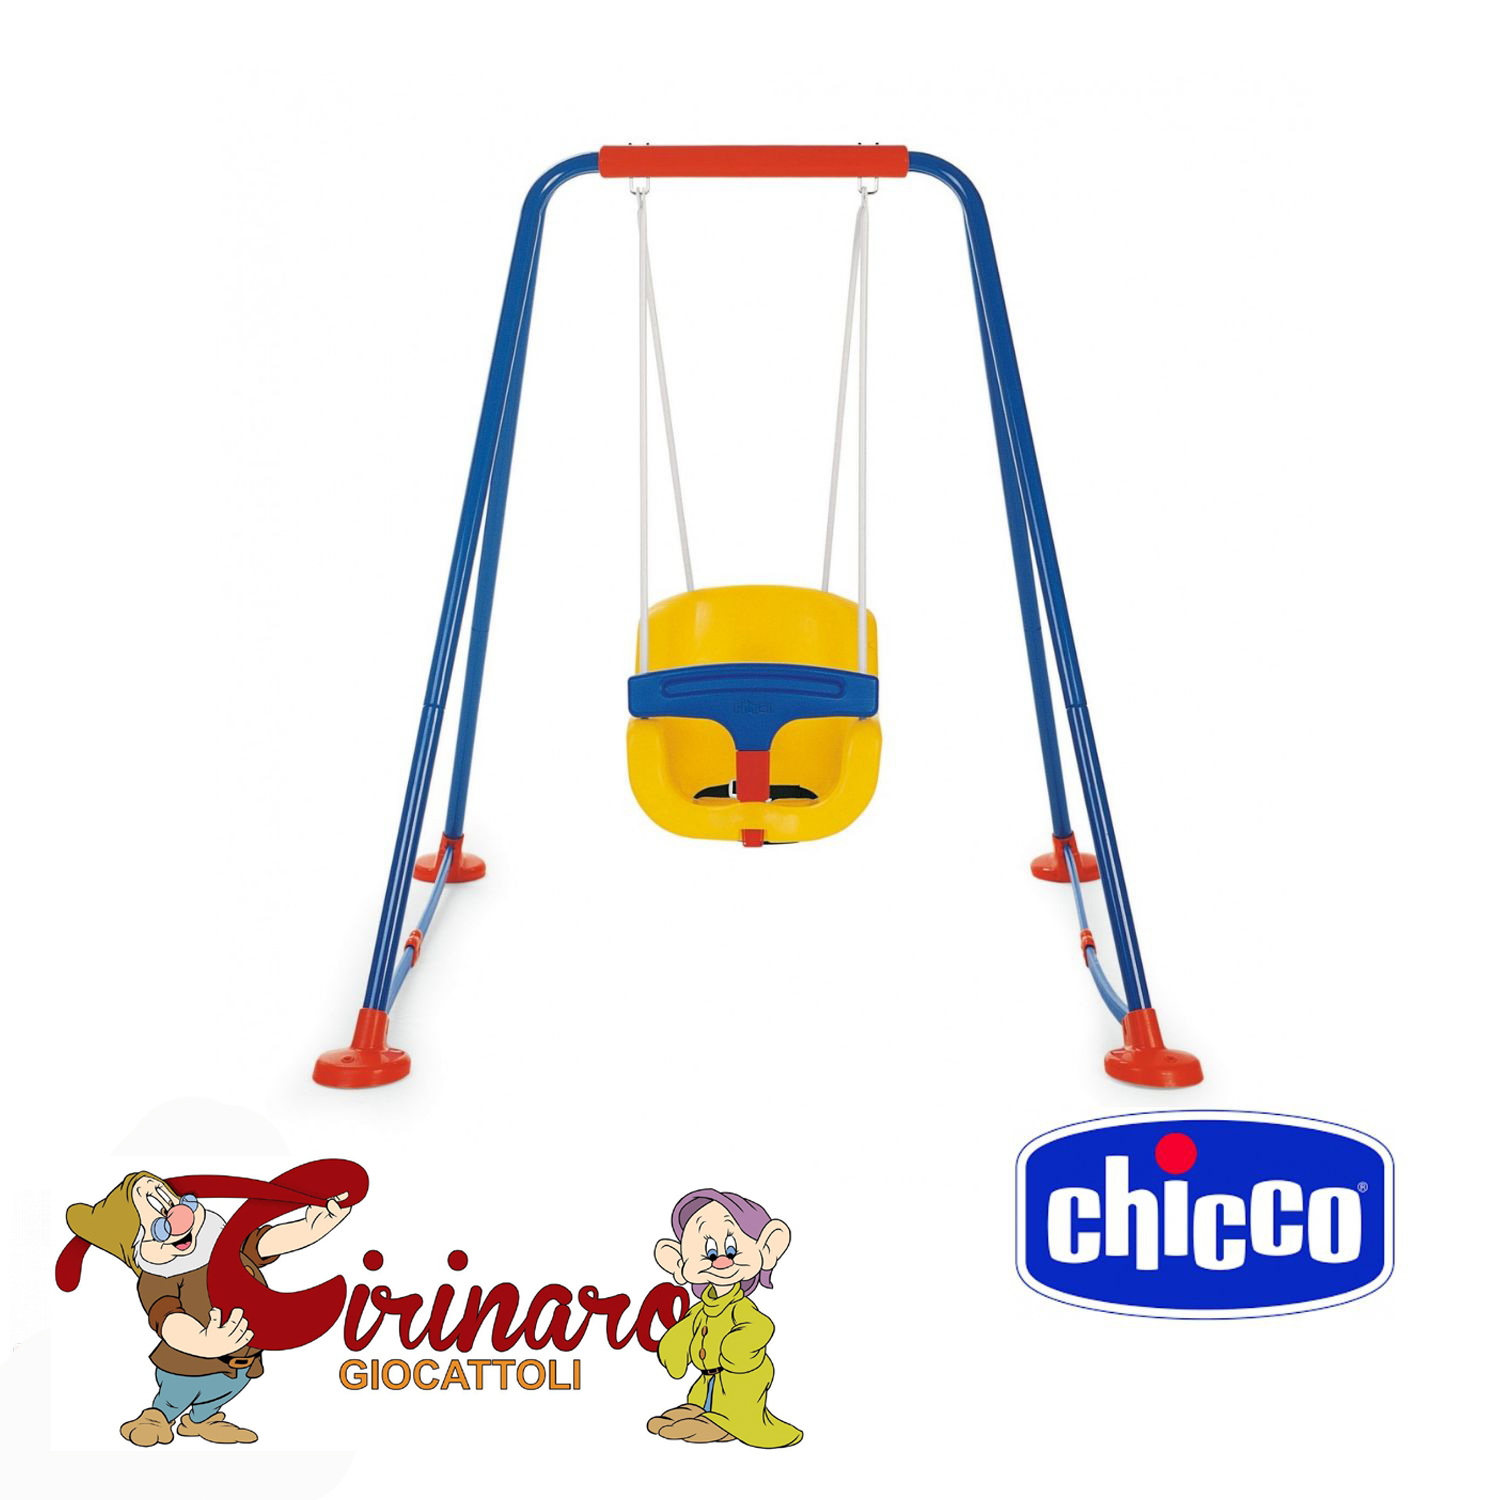 chicco altalena super swing cirinaroshopcirinaroshop